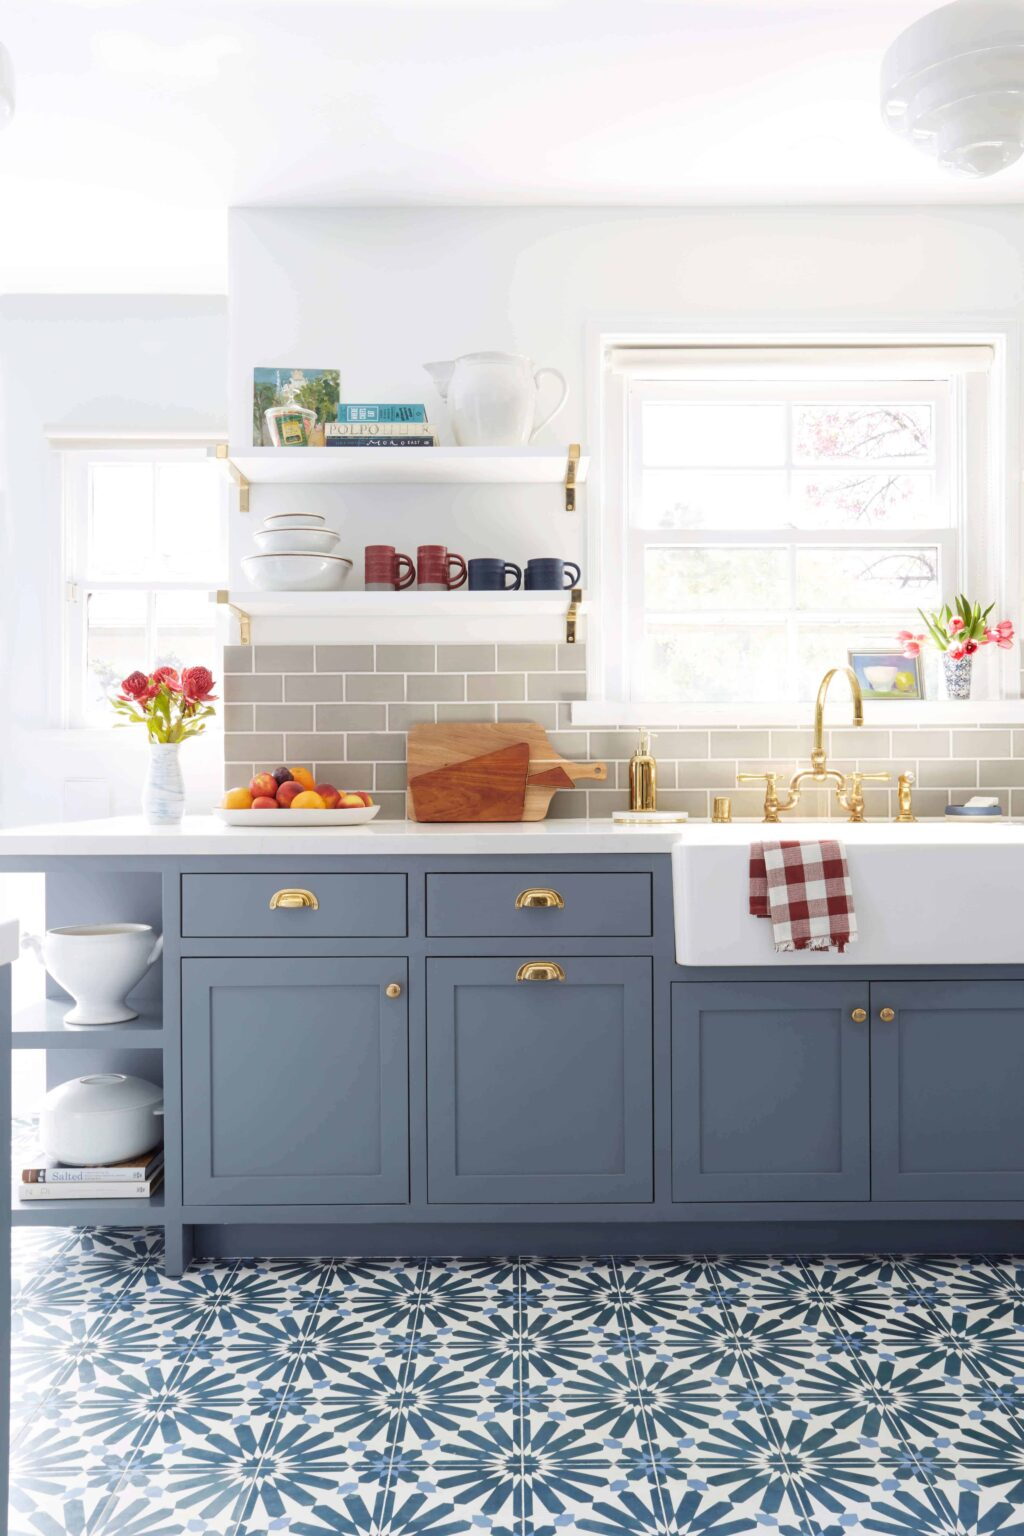 How To Have Open Shelving In Your Kitchen Without Daily: How To Style Open Shelving